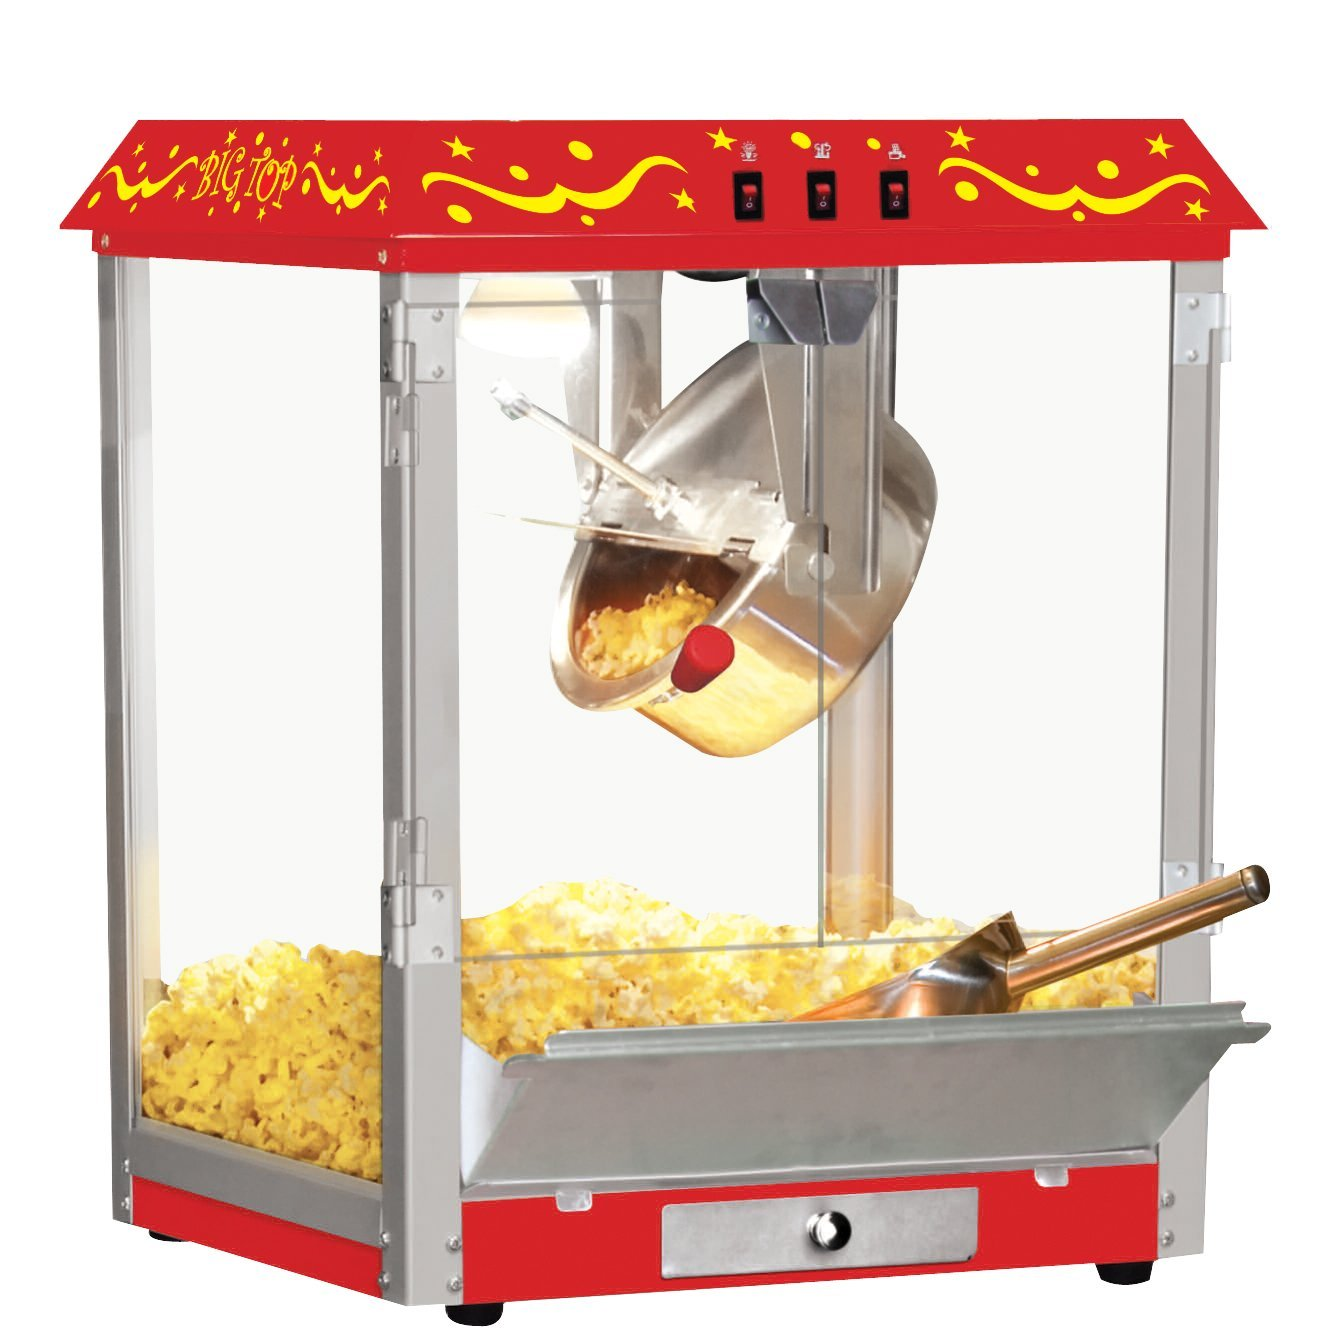 Northern Trail BW825CR Big Top Carnival Style Electric Table-Top Popcorn Machine with 8 oz Kettle, Red